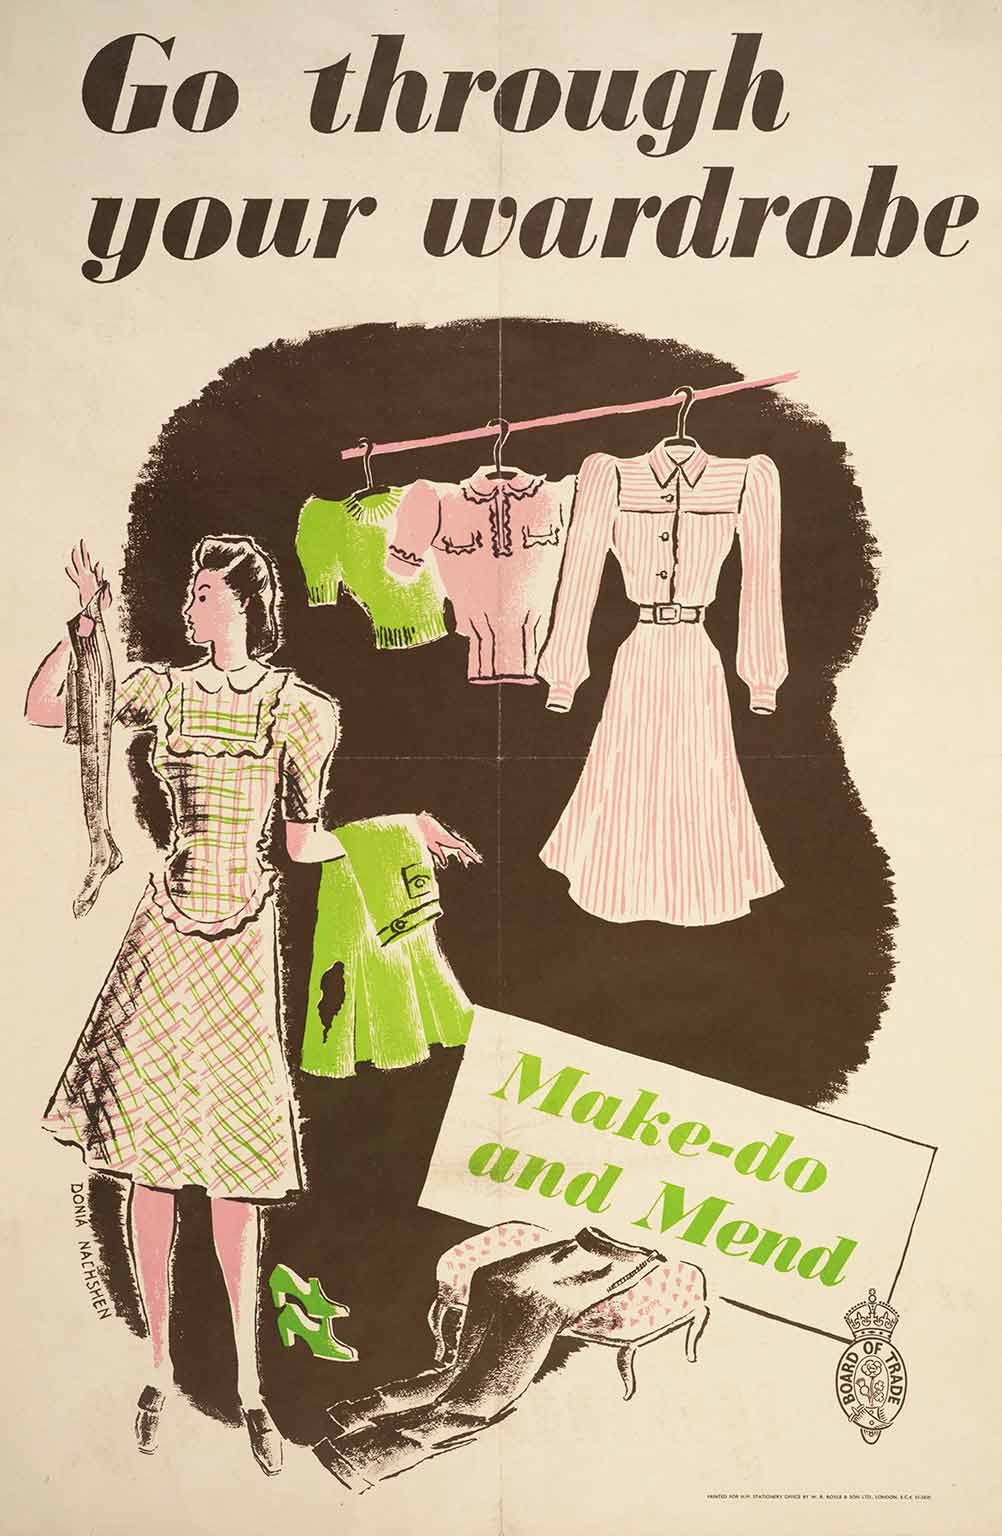 4. Fashion on the Ration, IWM London, 50% off with National Art Pass - Go Through Your Wardrobe Make-Do and Mend poster. © IWM